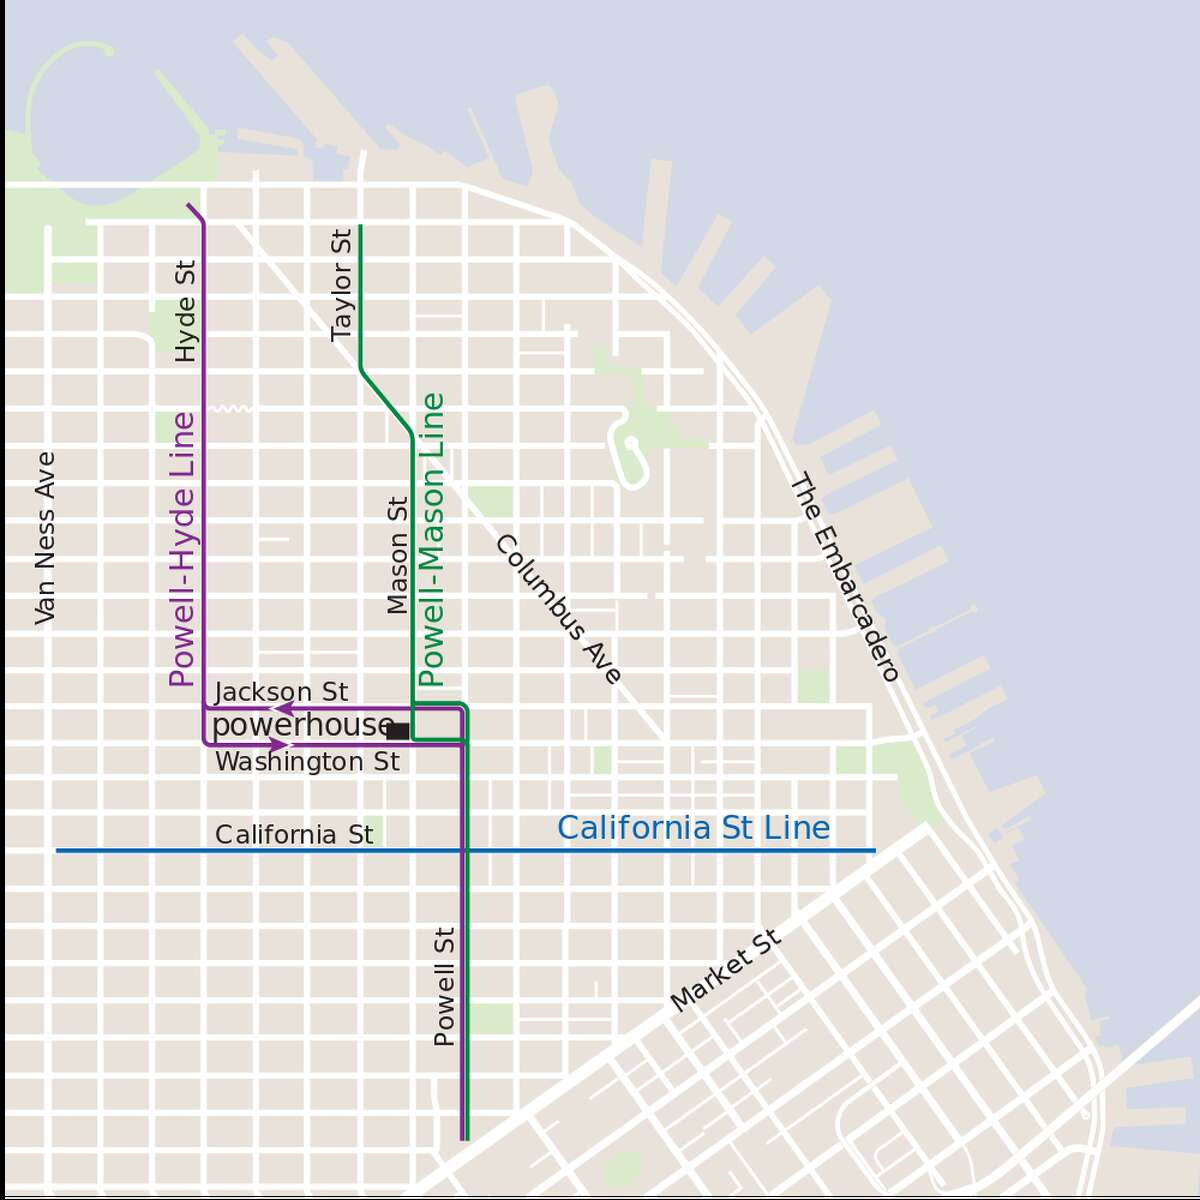 This map shows the three cable car lines in San Francisco: Powell-Hyde, Powell-Mason and California Street Line.